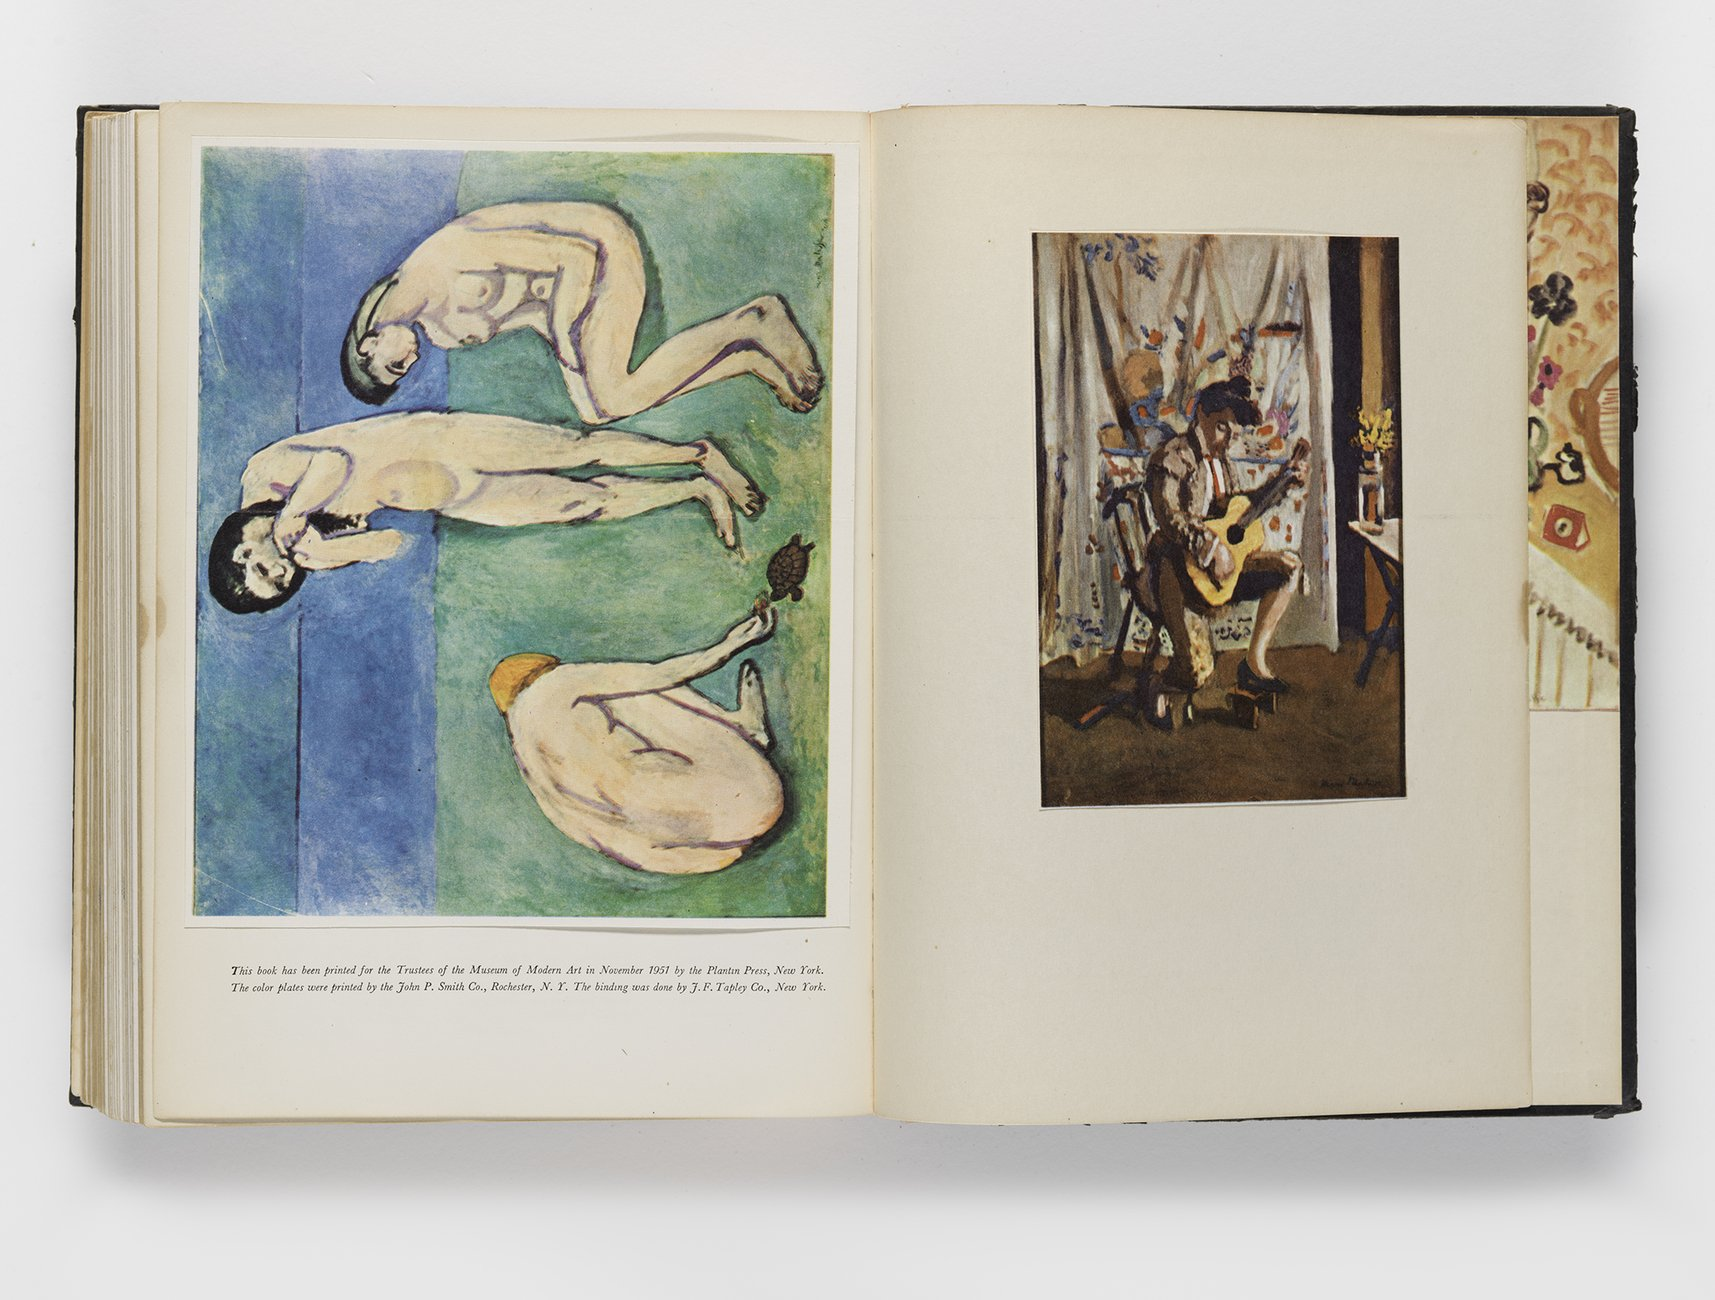 ​Alfred Barr, Matisse: His Art and His Public, 1951 (pp. 592-593)